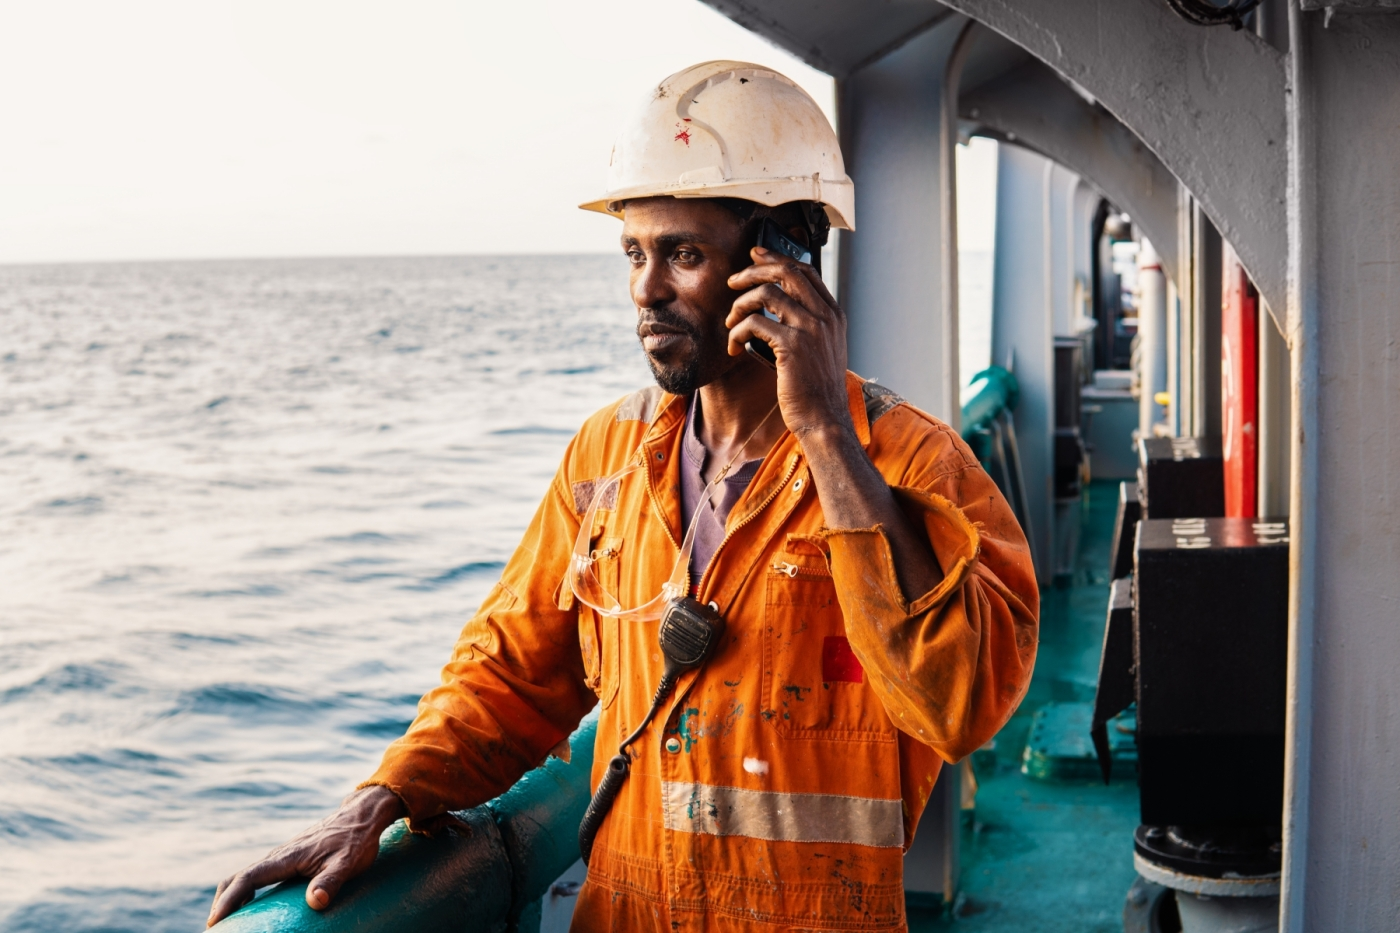 A sailor on the deck of a ship, talking on a phone and staring at the horizon.